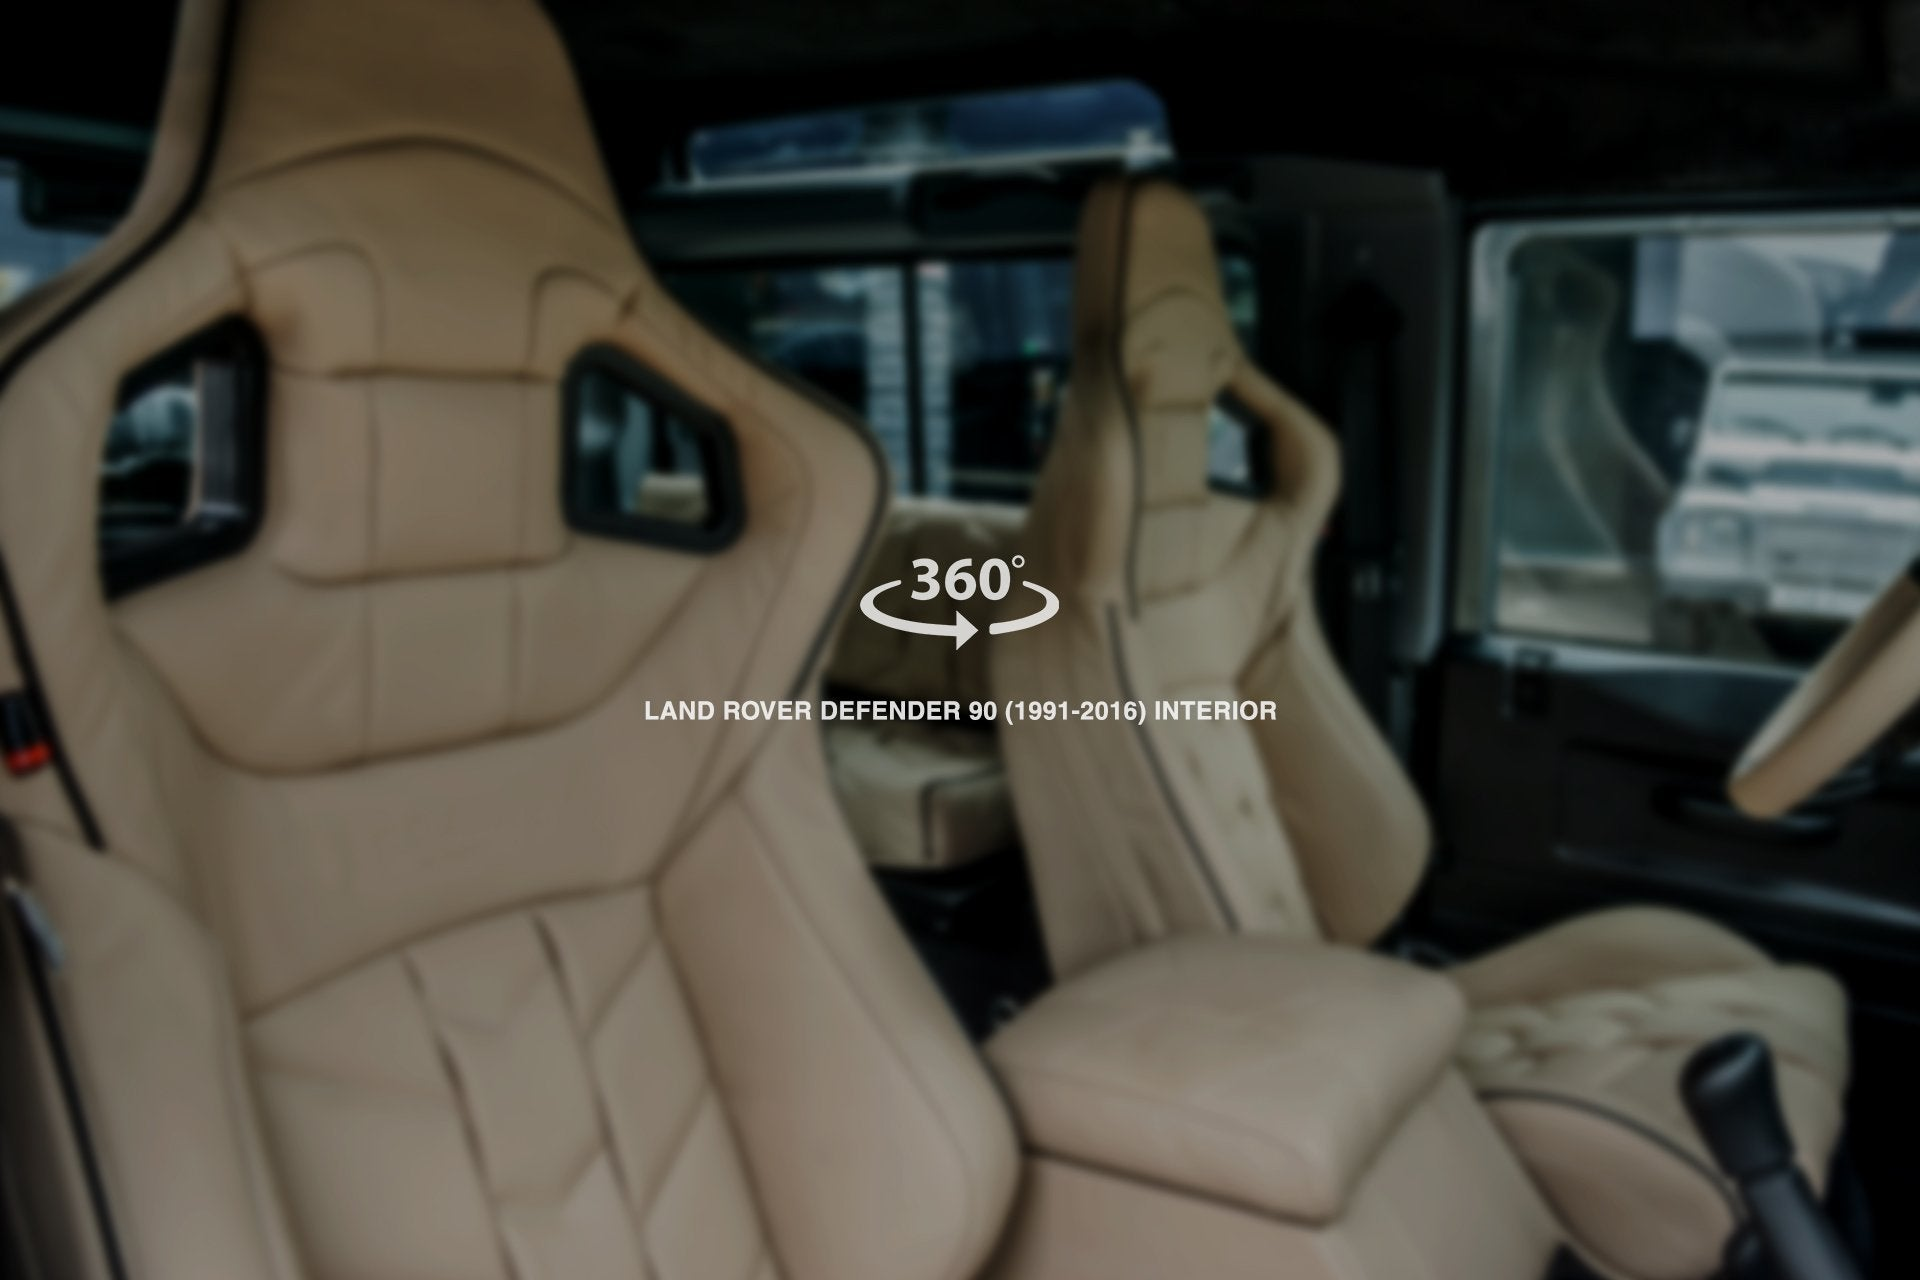 LAND ROVER DEFENDER 90 (1991-2016) sports Interior - 6 Seats